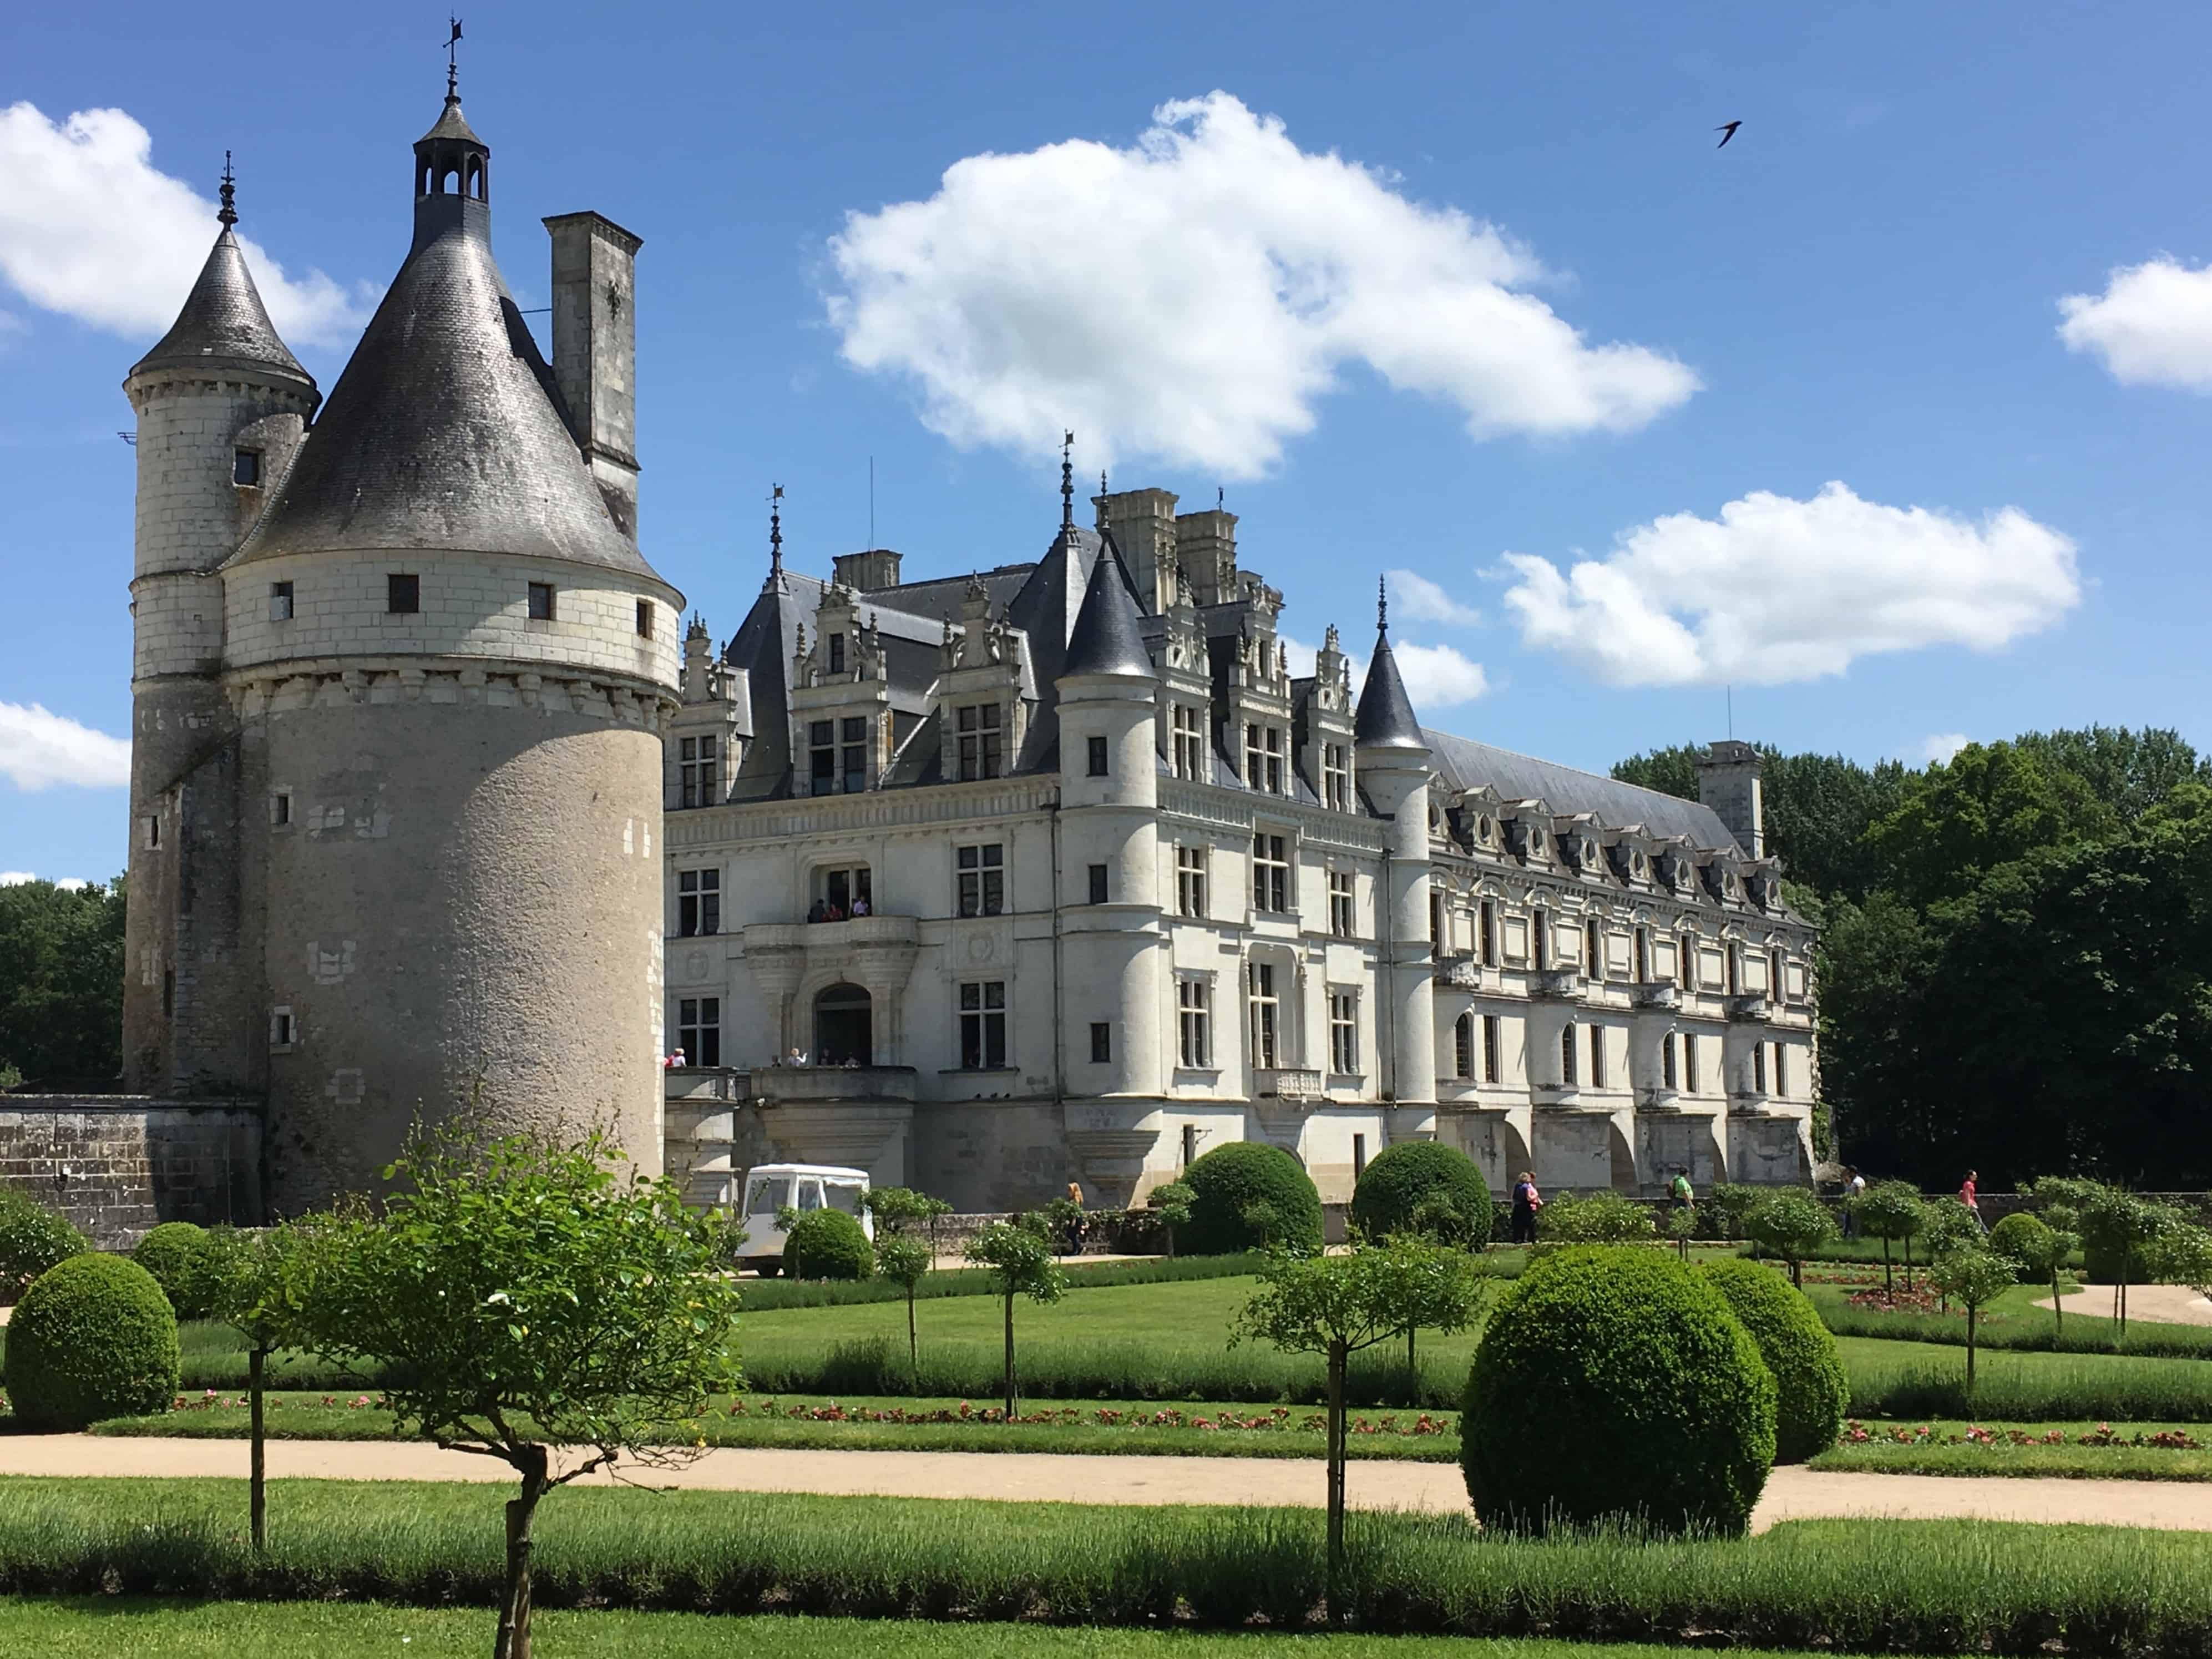 tours to loire valley from paris: Julie from The Freckled Tourist took a day tour from Paris and visited the Loire Castles -